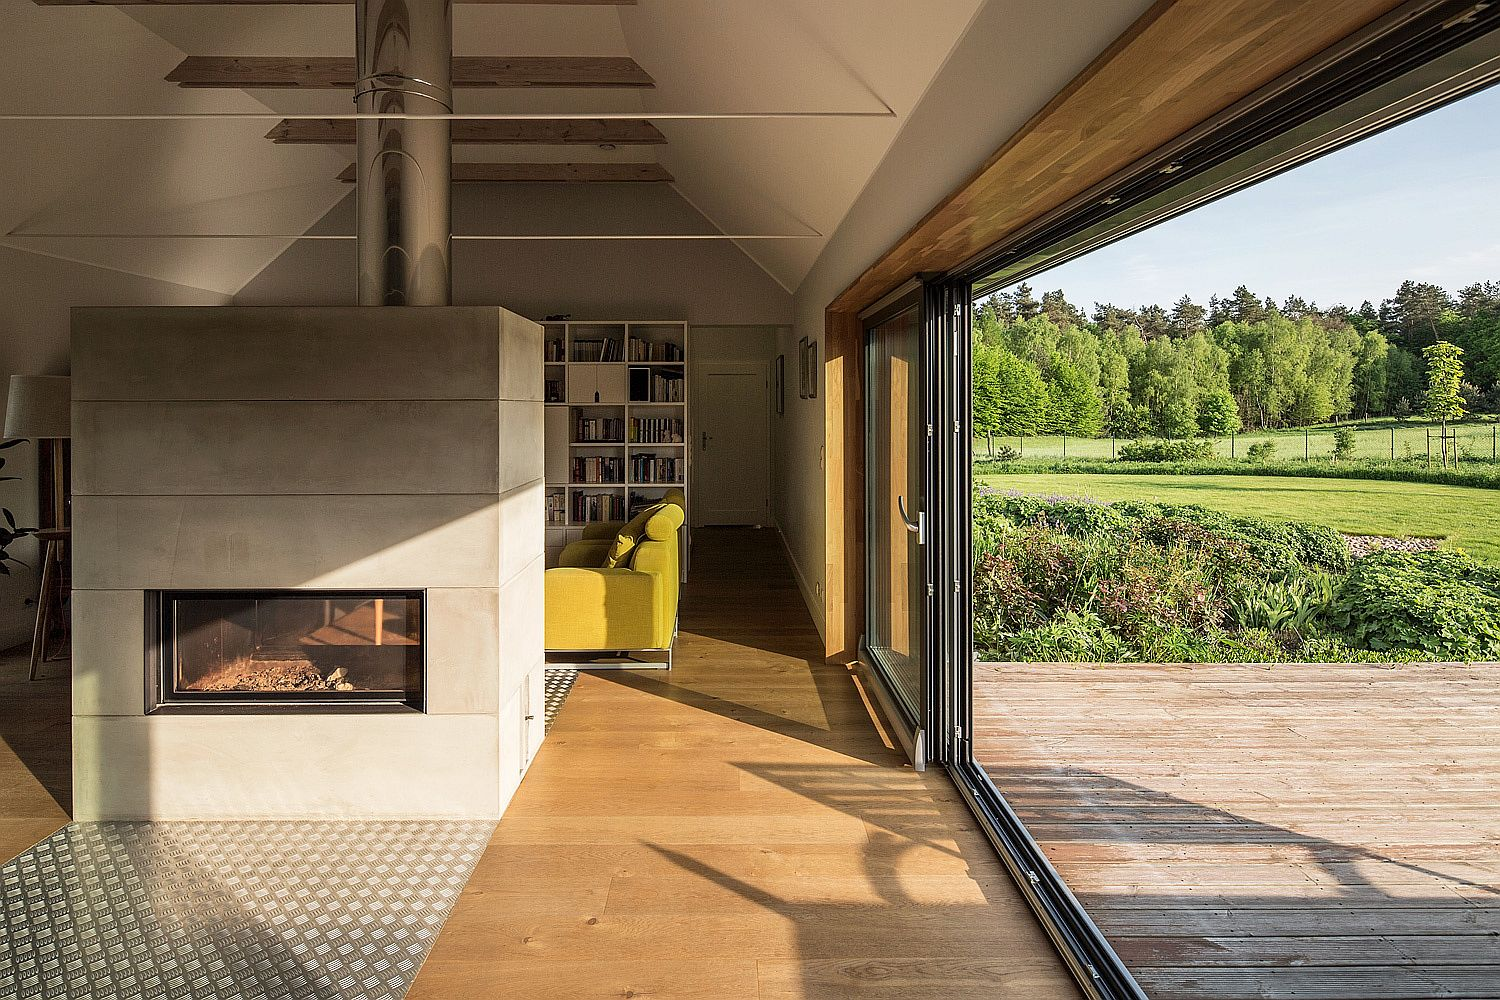 Sliding-glass-doors-connect-the-living-area-and-fireplace-with-the-sunny-deck-outside